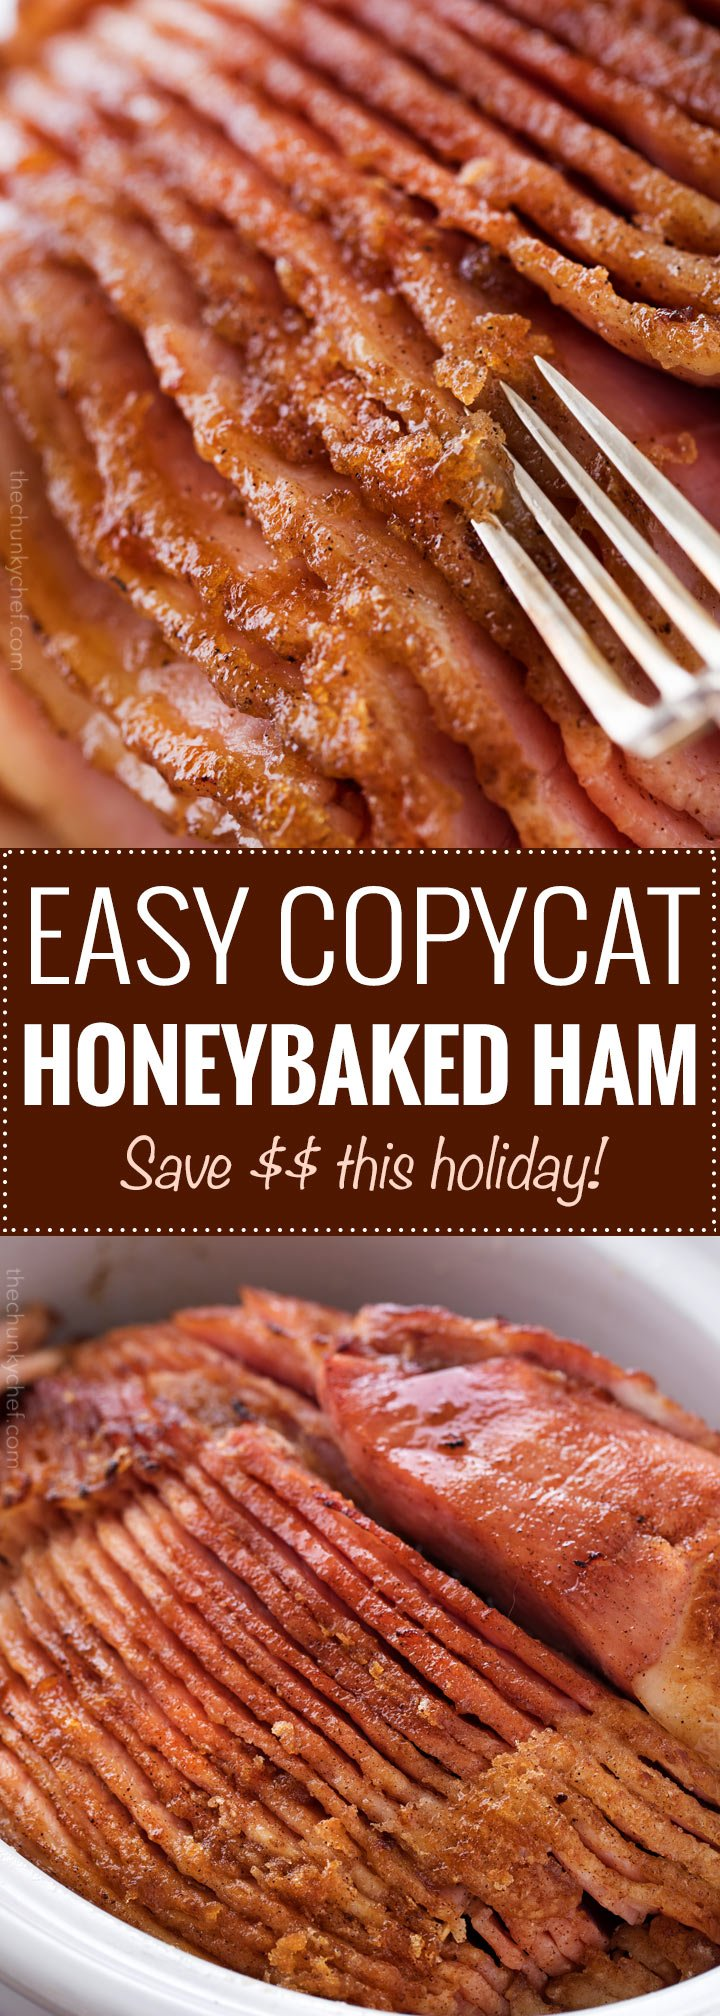 This copycat HoneyBaked ham is succulent and tender, with the most amazing crispy sweet glaze! Made with honey, sugar, and plenty of mouthwatering spices, you'll be amazed at how easy it is to make this ham at home and save a TON of money! | #copycatrecipe #ham #honeybakedham #holidaydinner #easter #thanksgiving